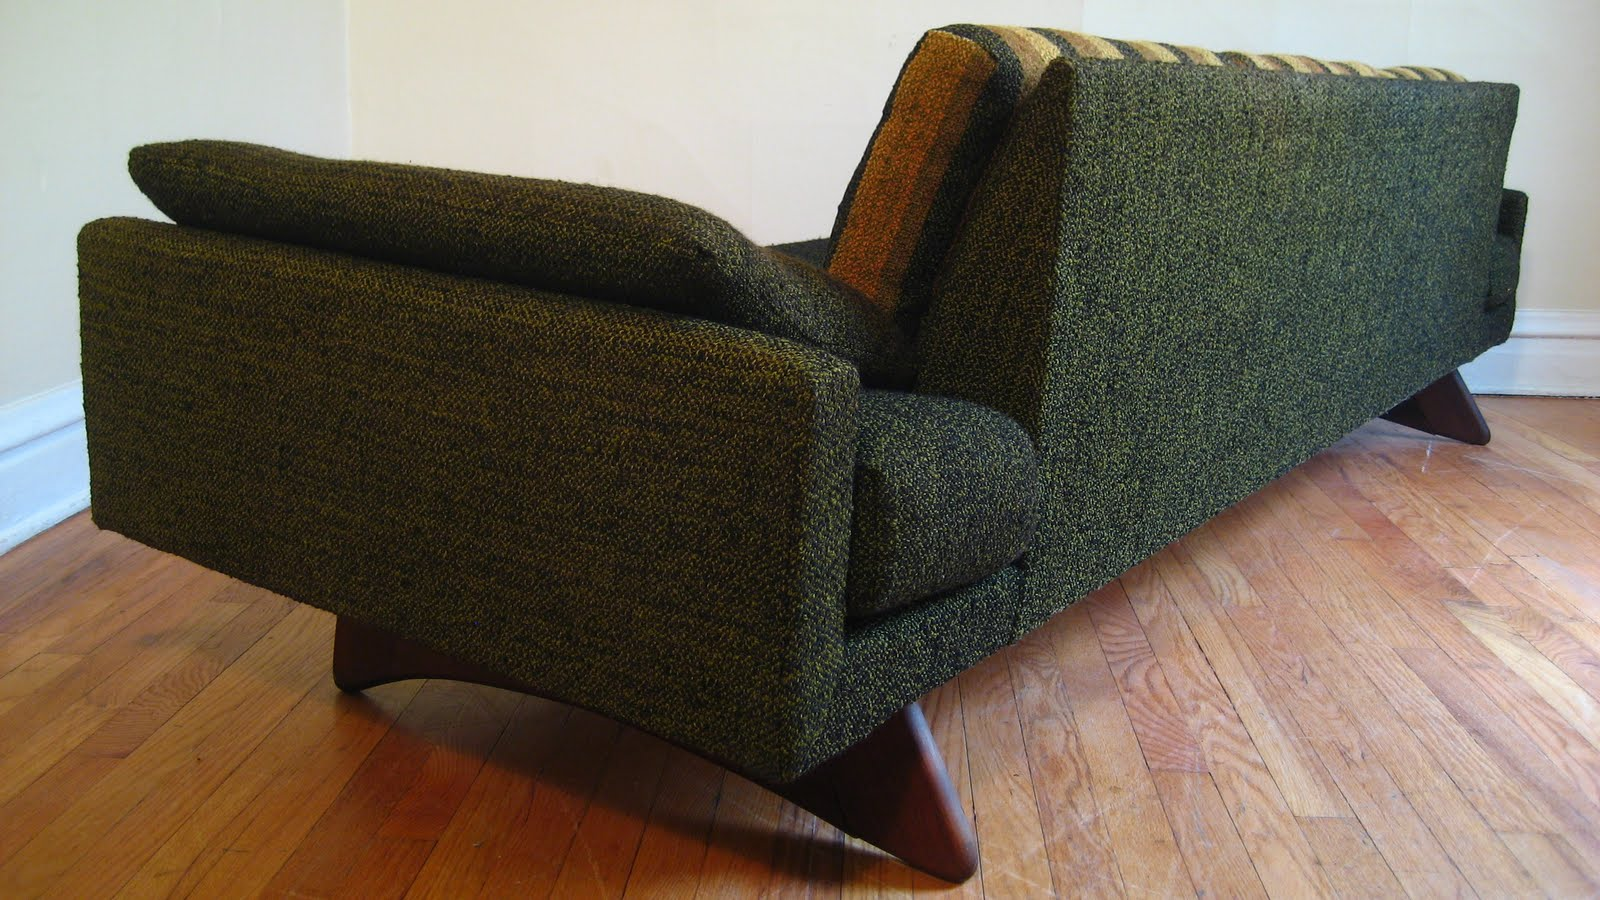 Pattern For Loose Sofa Cover 1 Piece Slipcover Flatout Design Adrian Pearsall Craft Associates